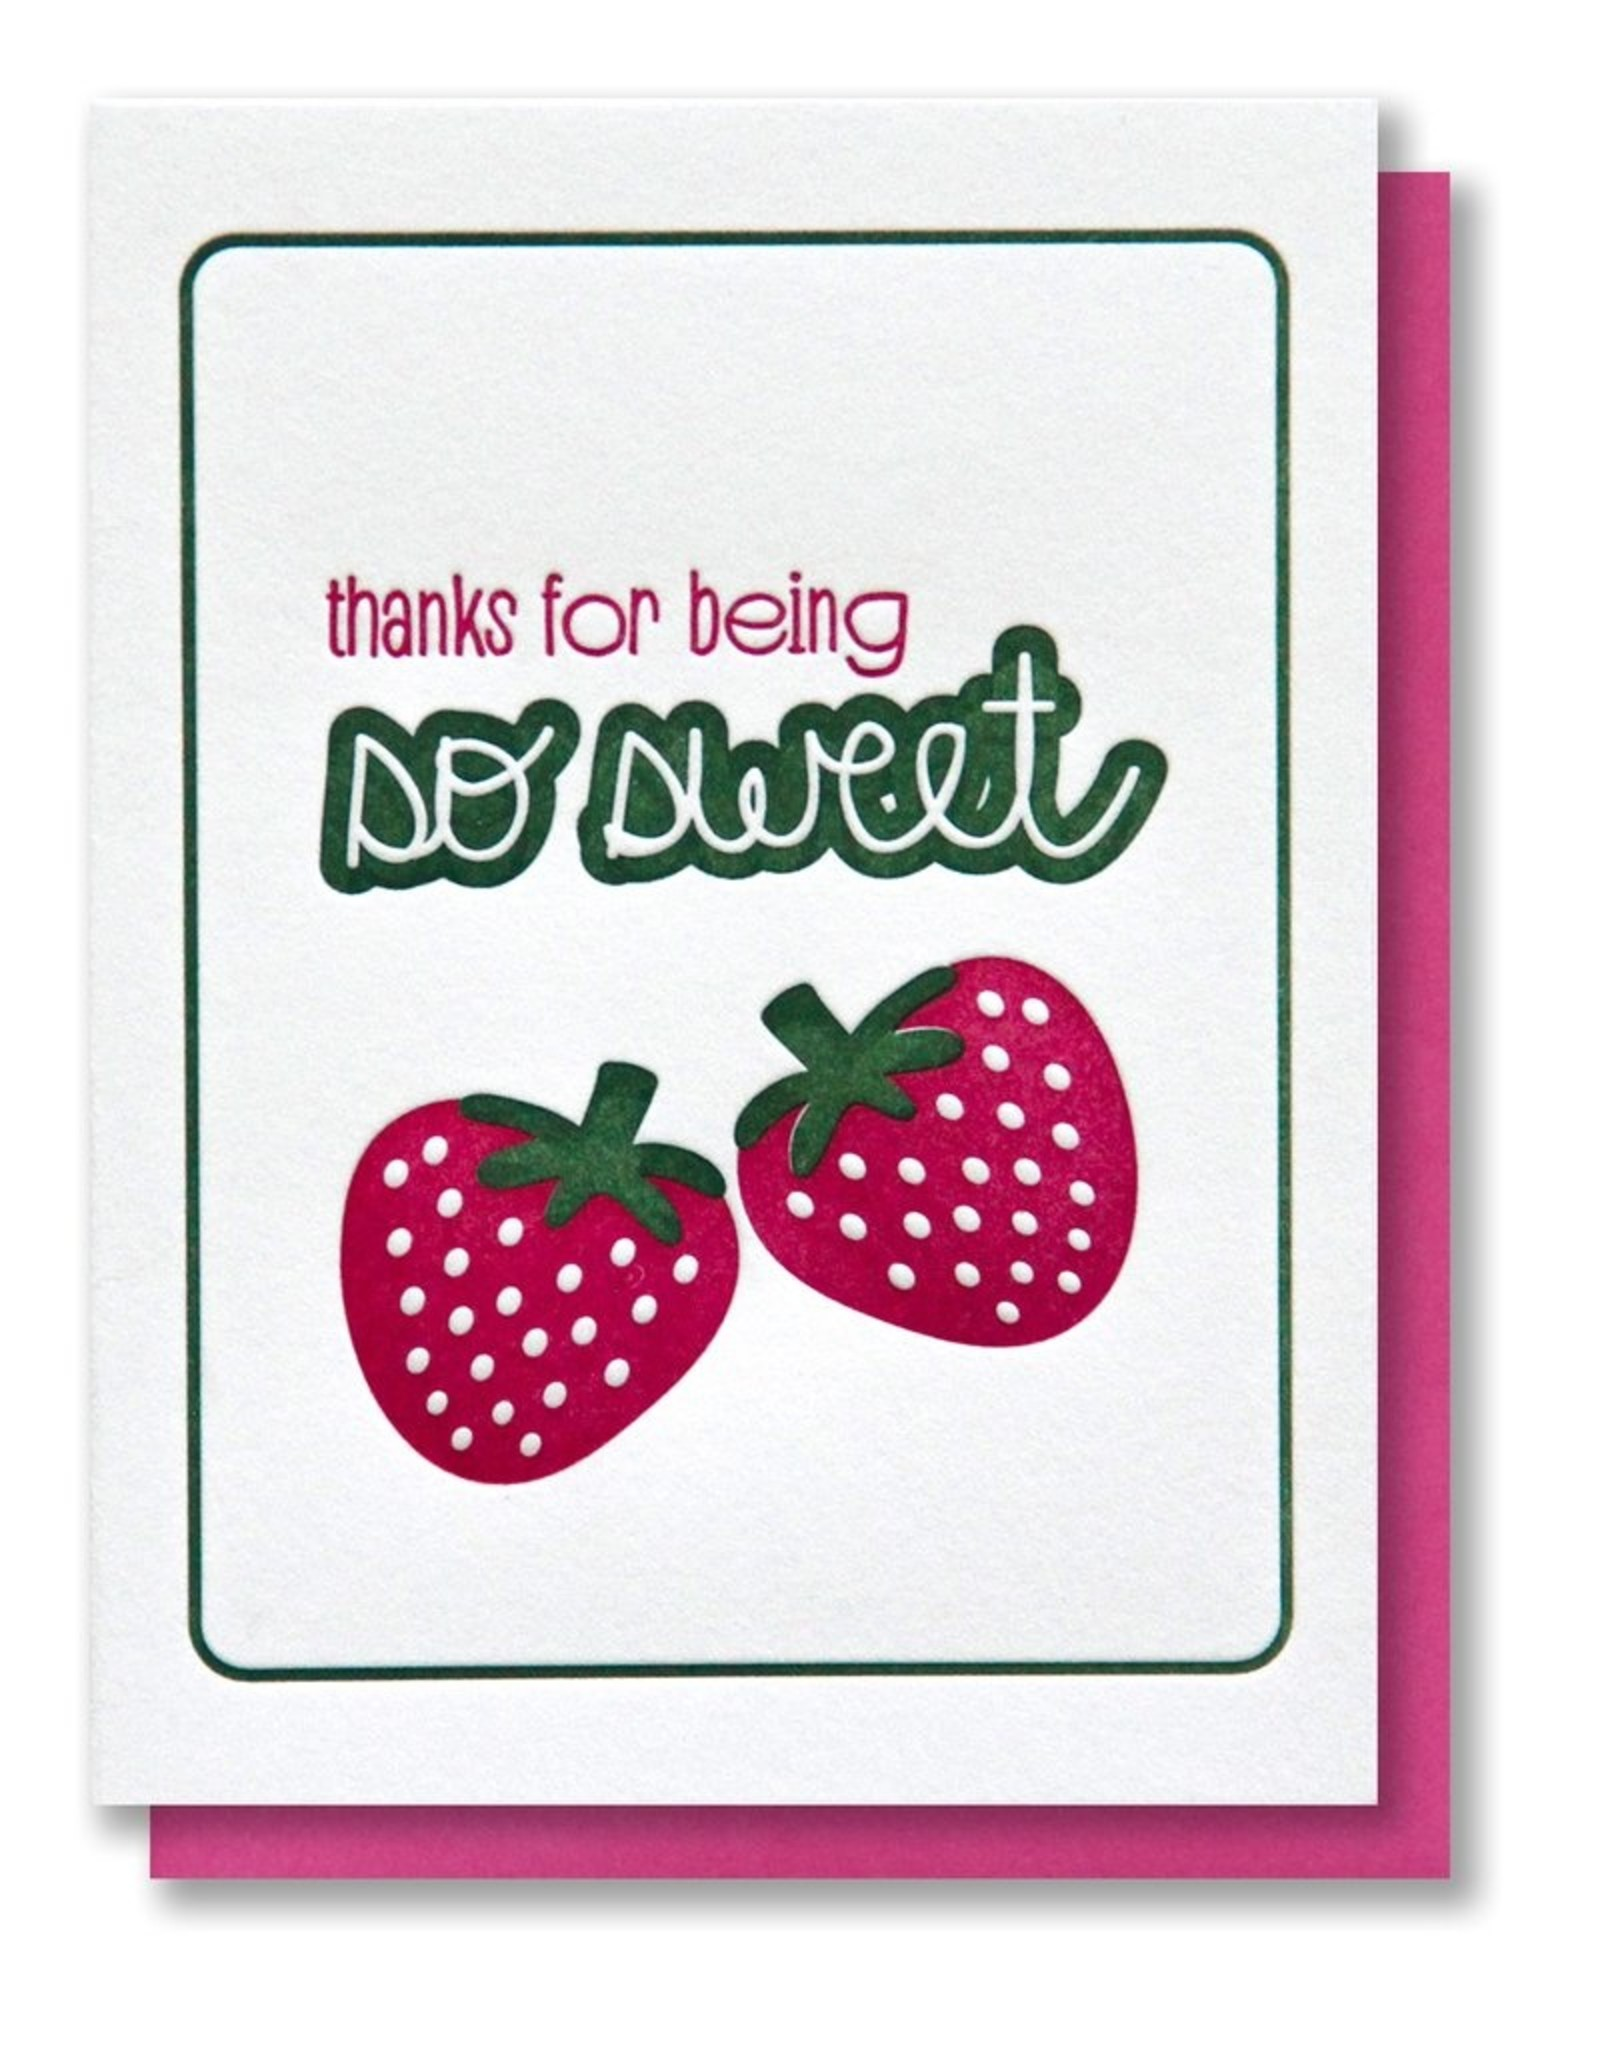 Kiss and Punch Letterpress Greeting Cards by Kiss and Punch